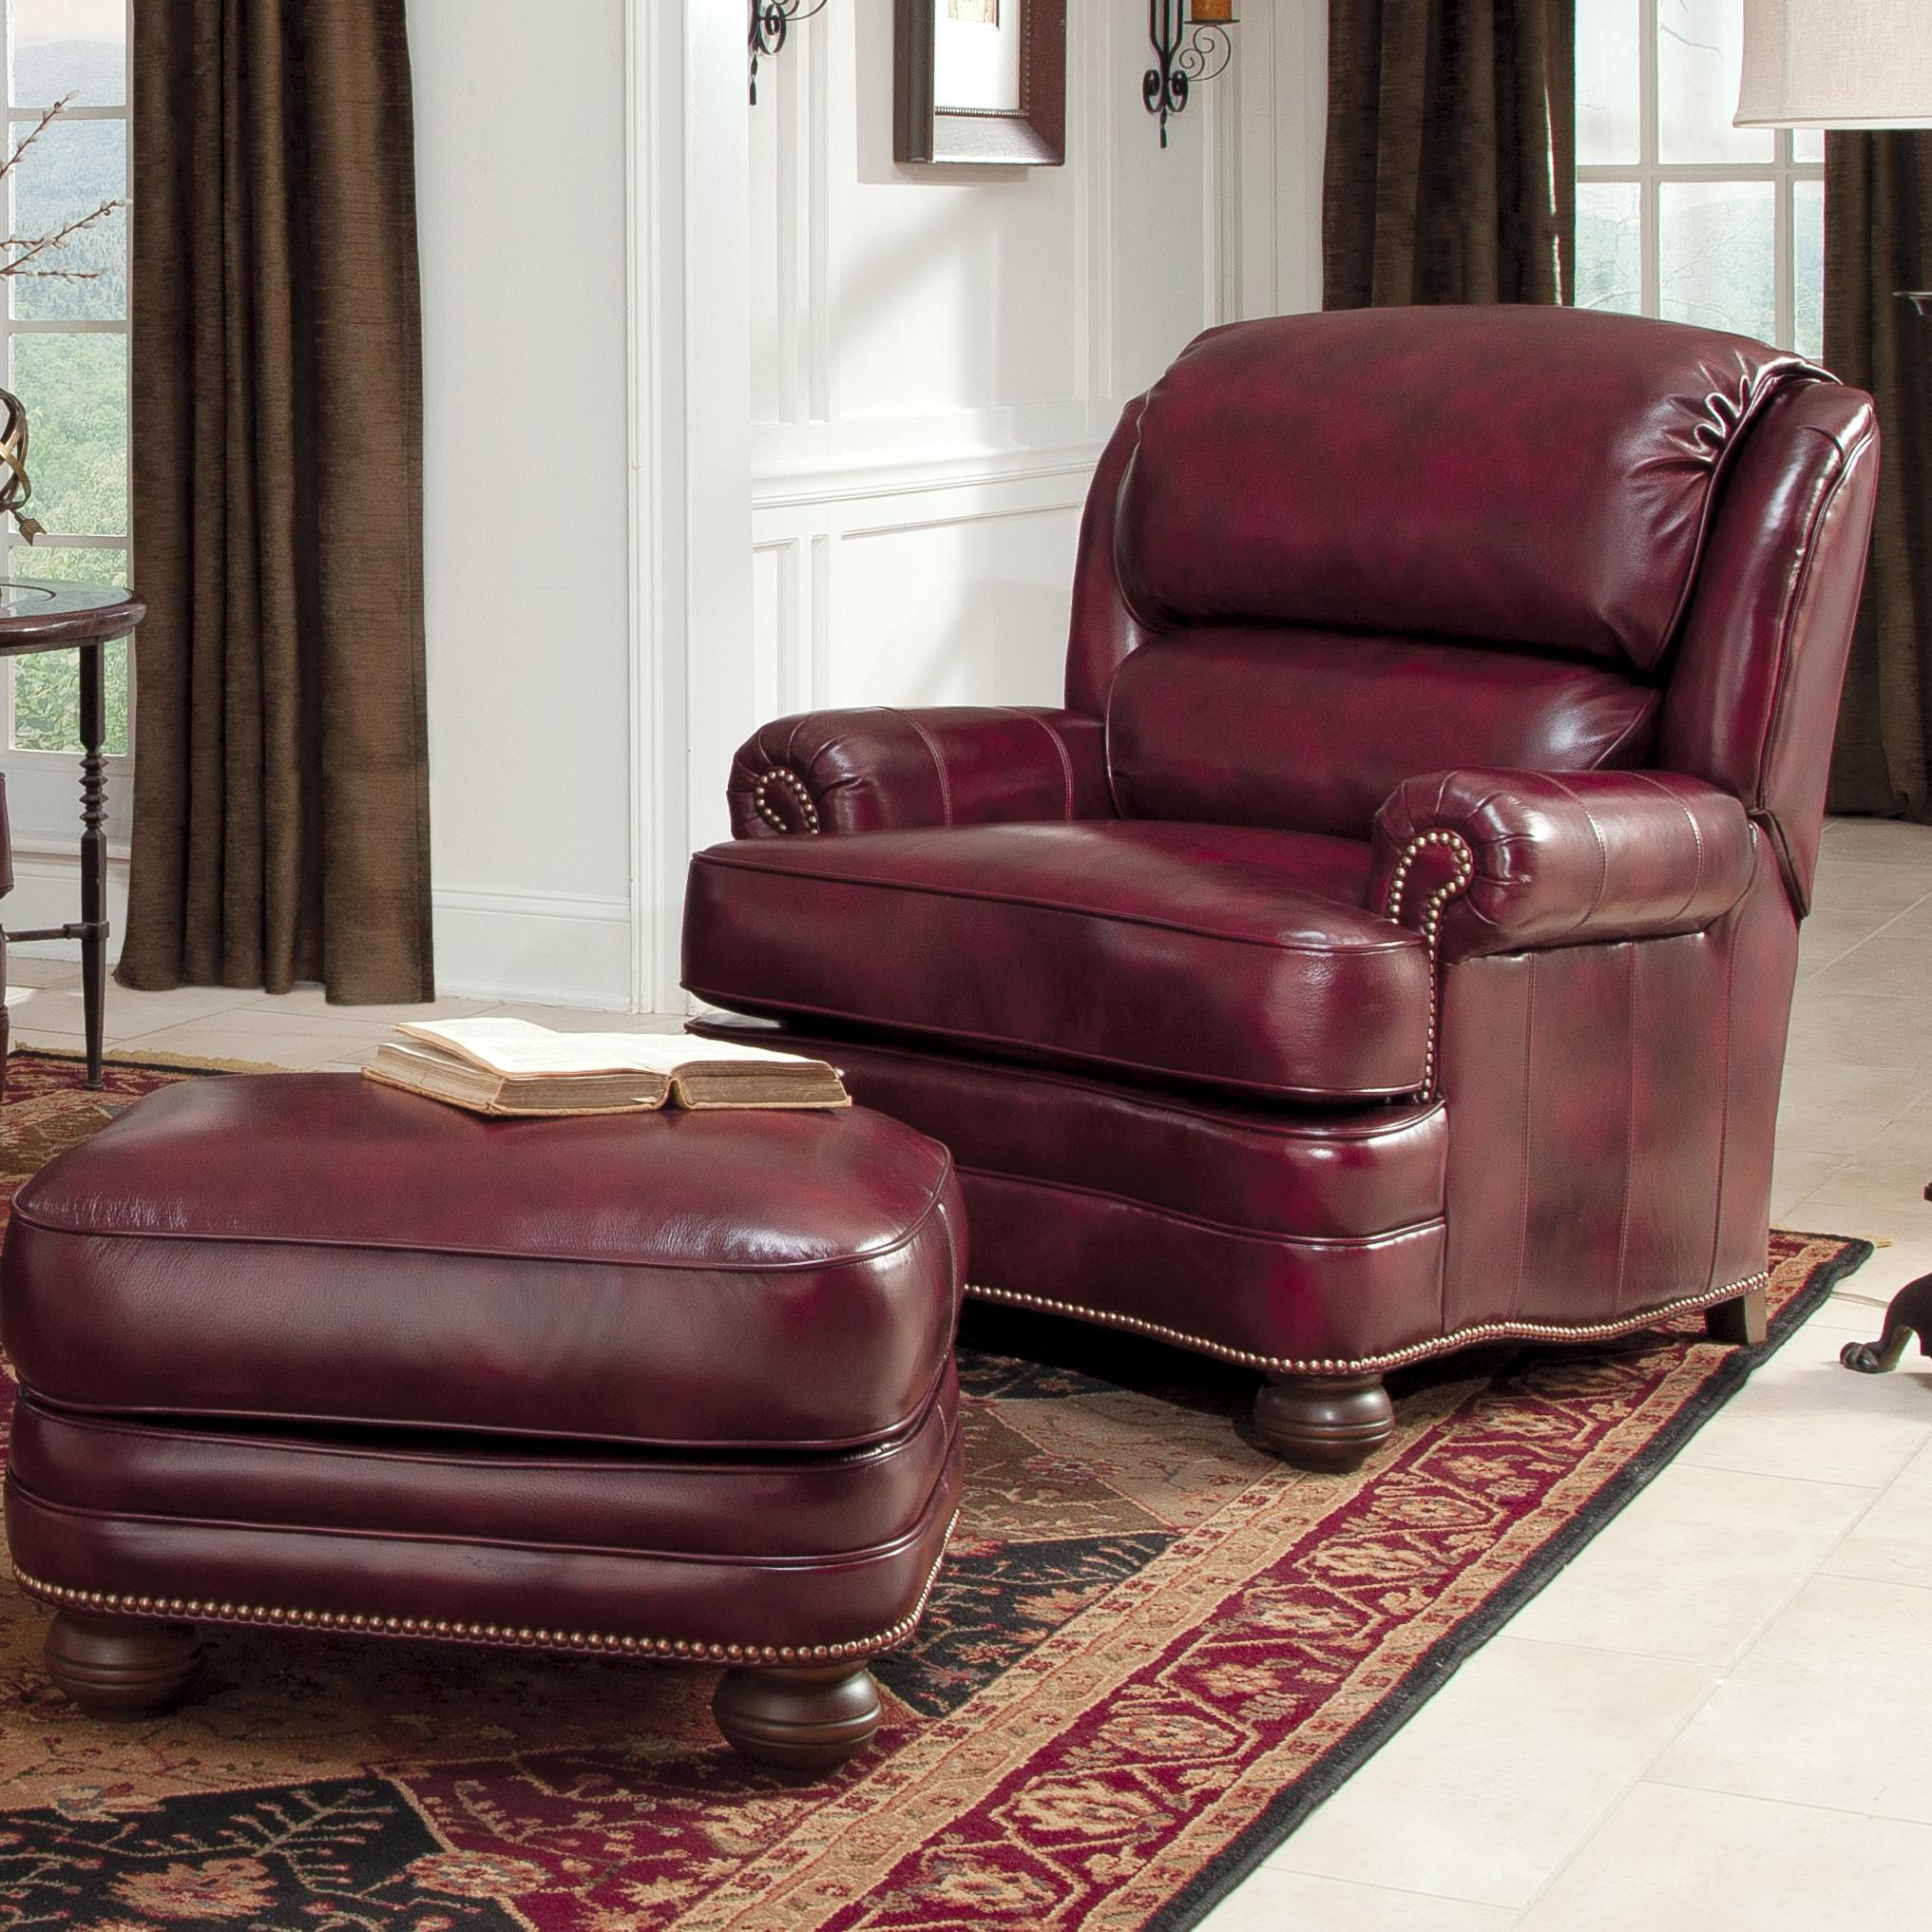 Great Leather Upholstered Chair And Ottoman